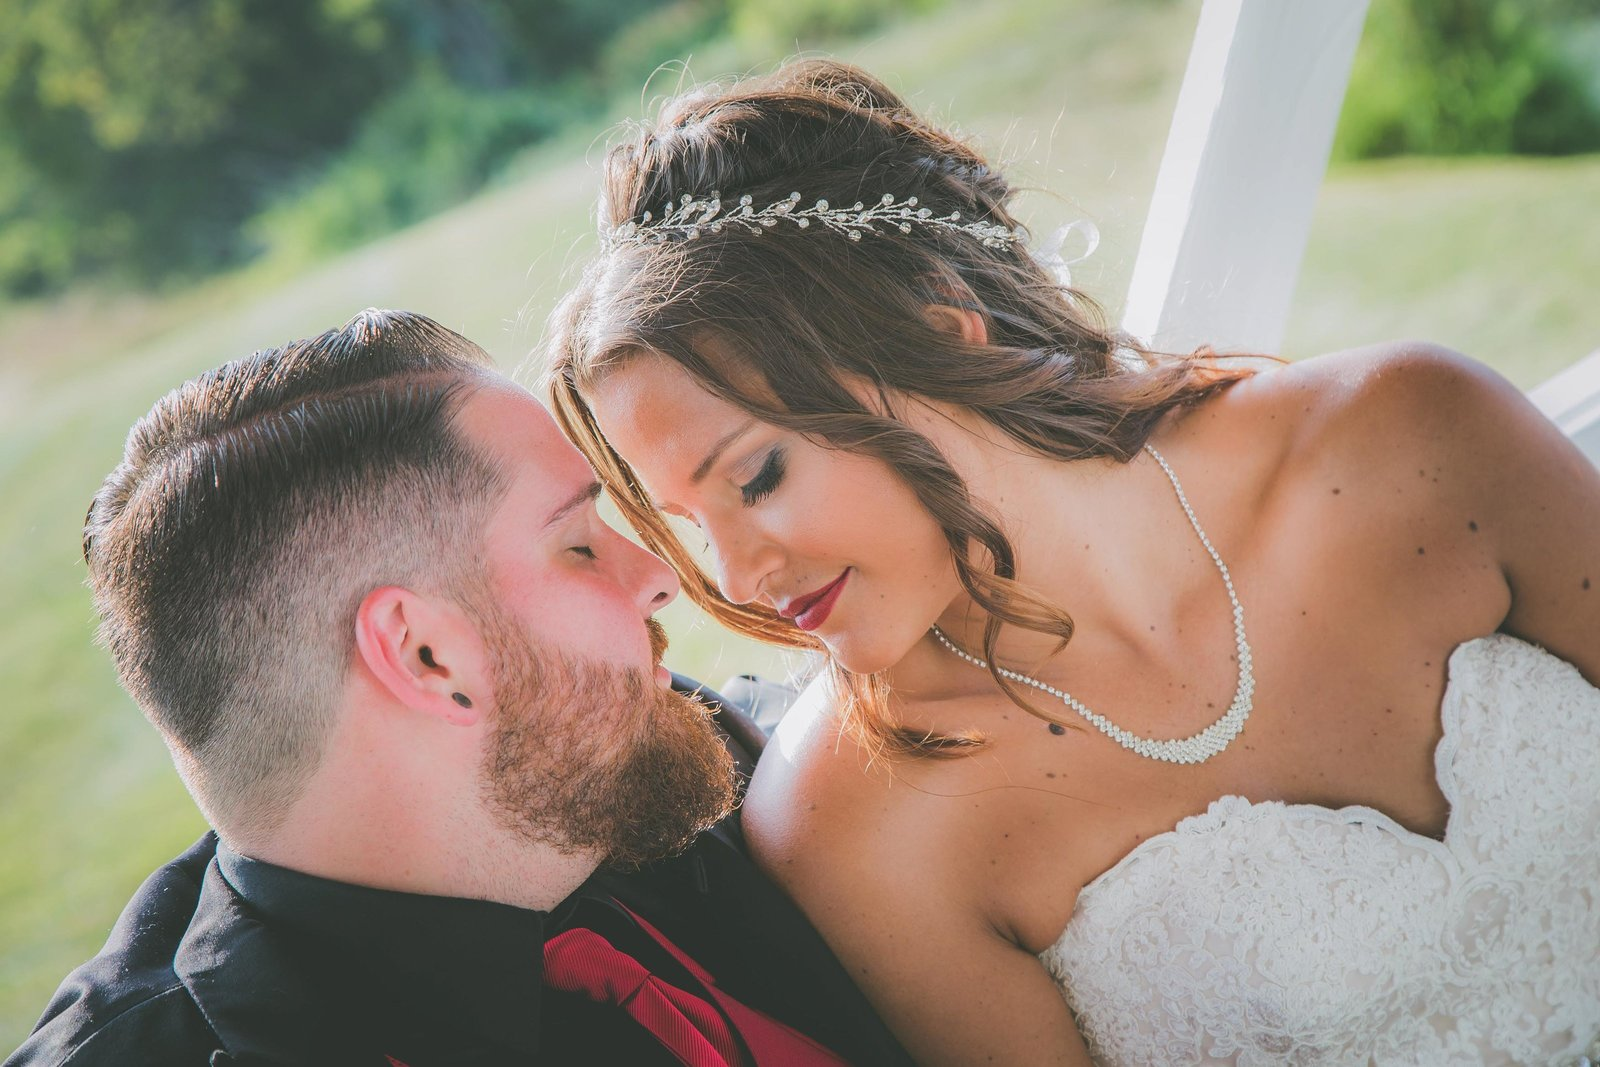 Couple closes their eyes and touch foreheads.